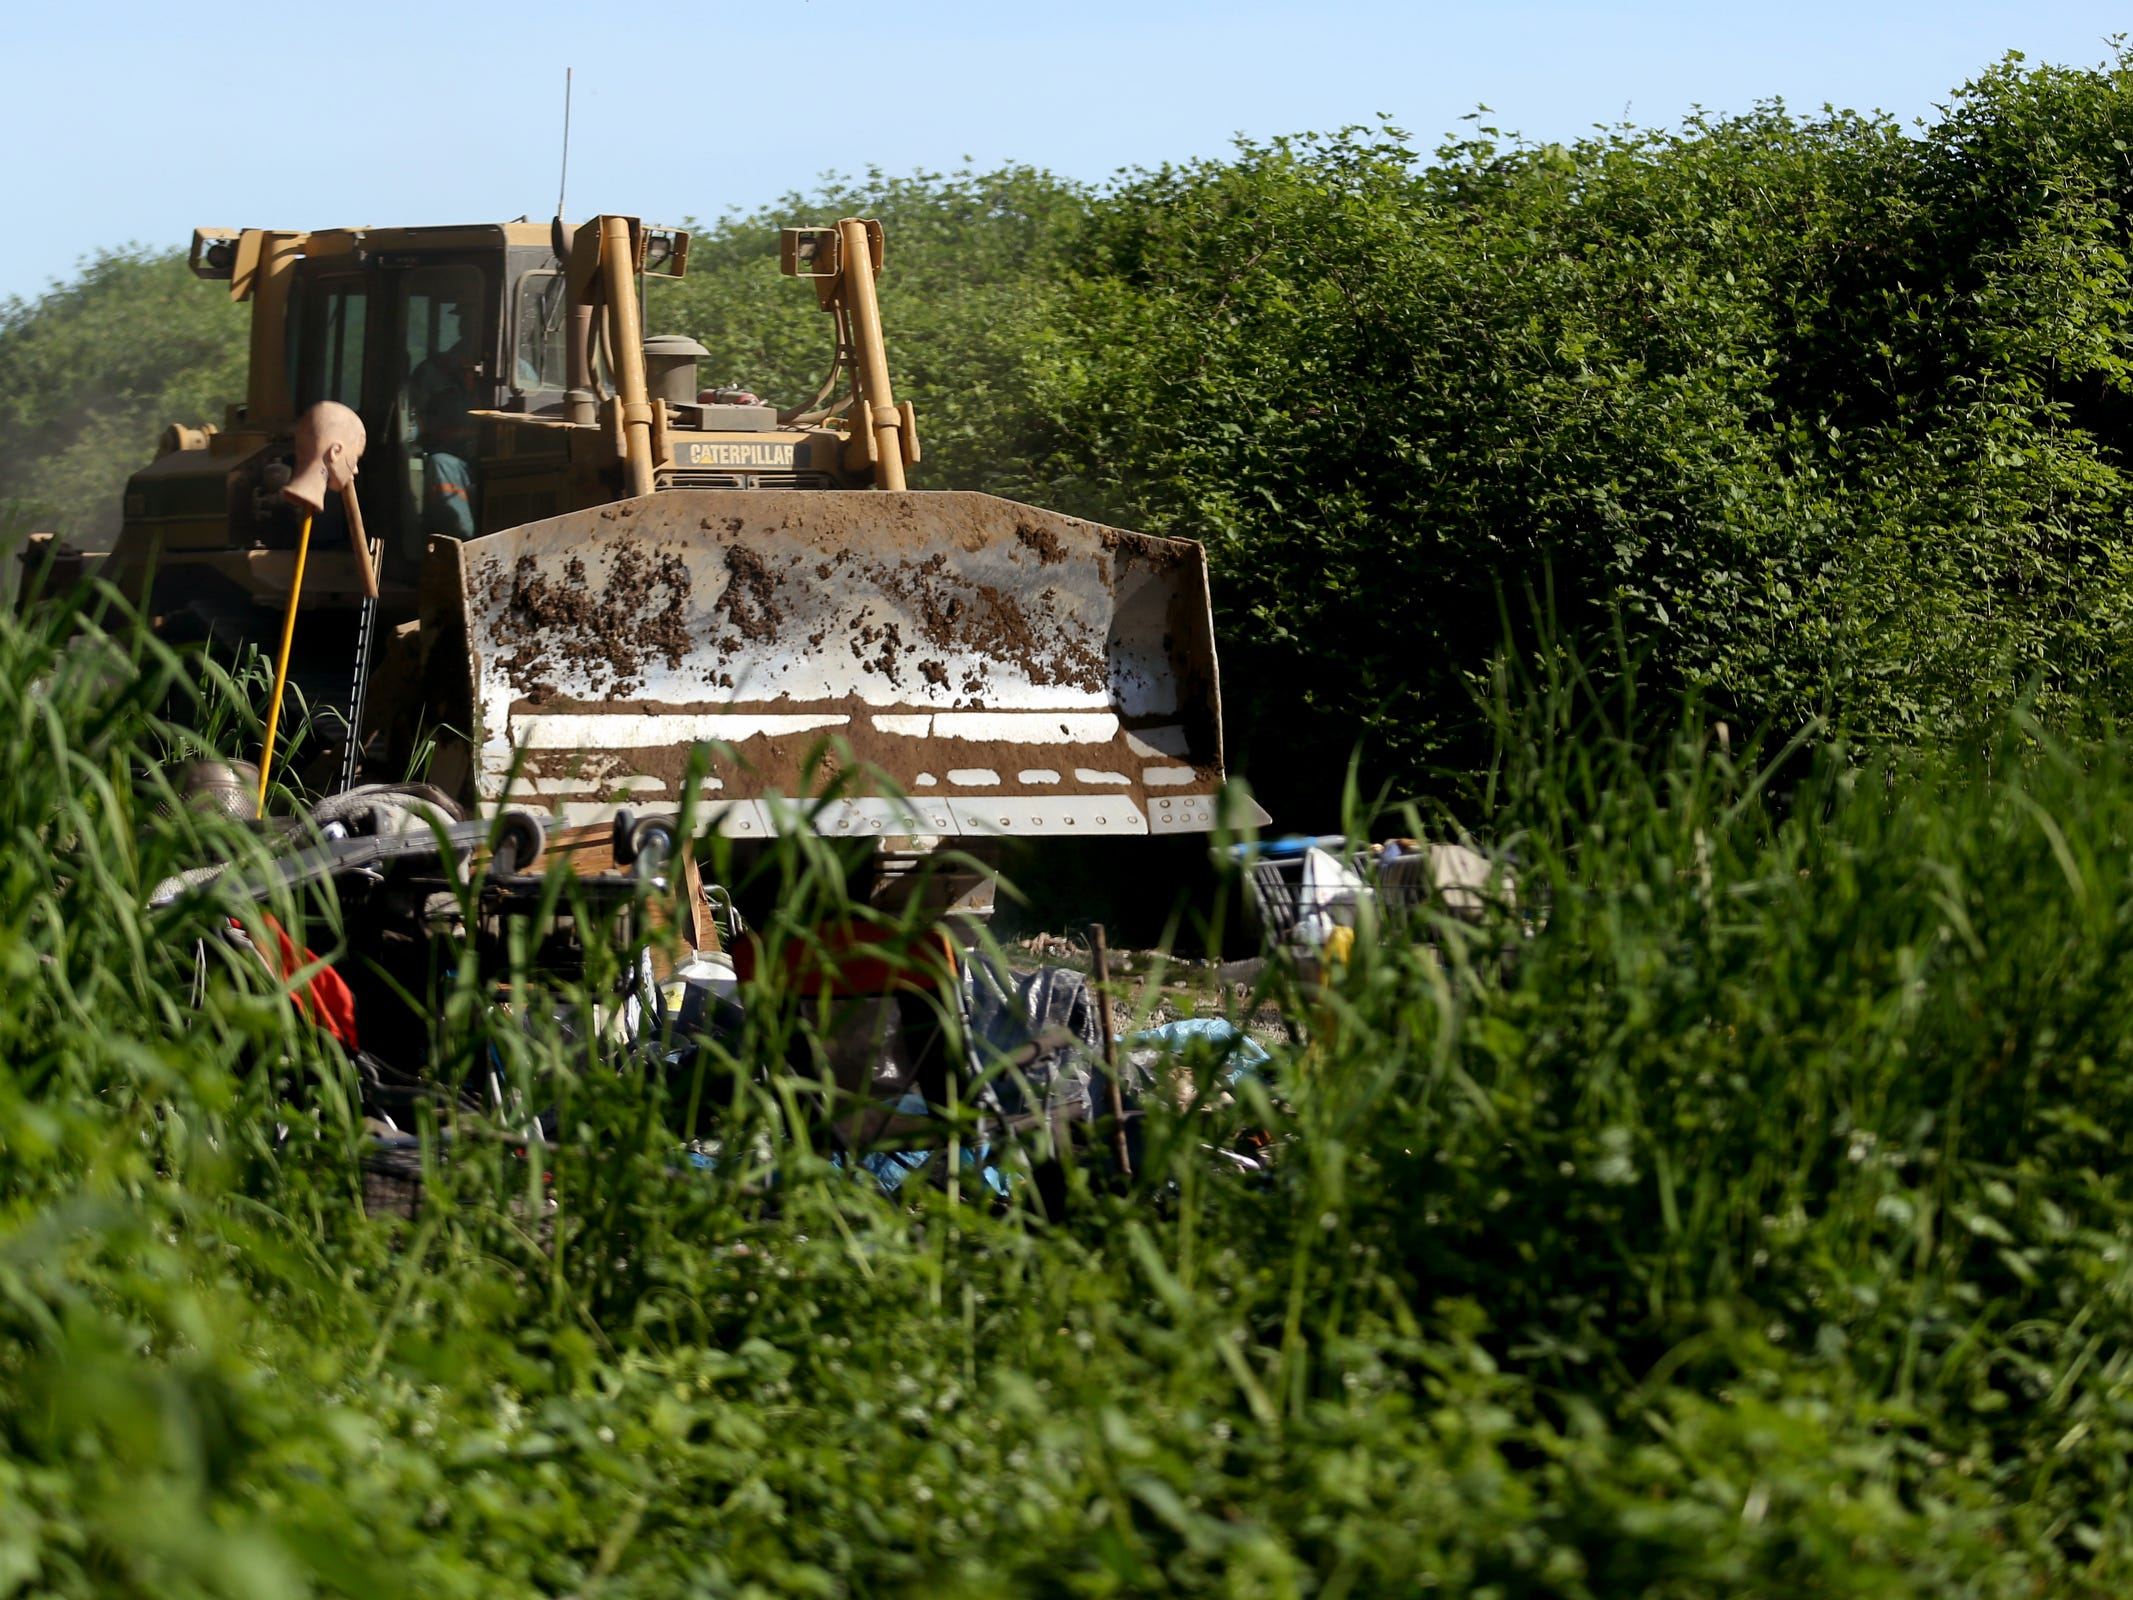 As a bulldozer comes in to a privately-owned rock quarry with a homeless camp near Wallace Marine Park in West Salem on May 7, 2019. Signs were posted throughout the camp recently stating personal property must be removed or it will be taken by the landowner and its designated agent starting May 7. An eviction can't be enforced until a court approves it.